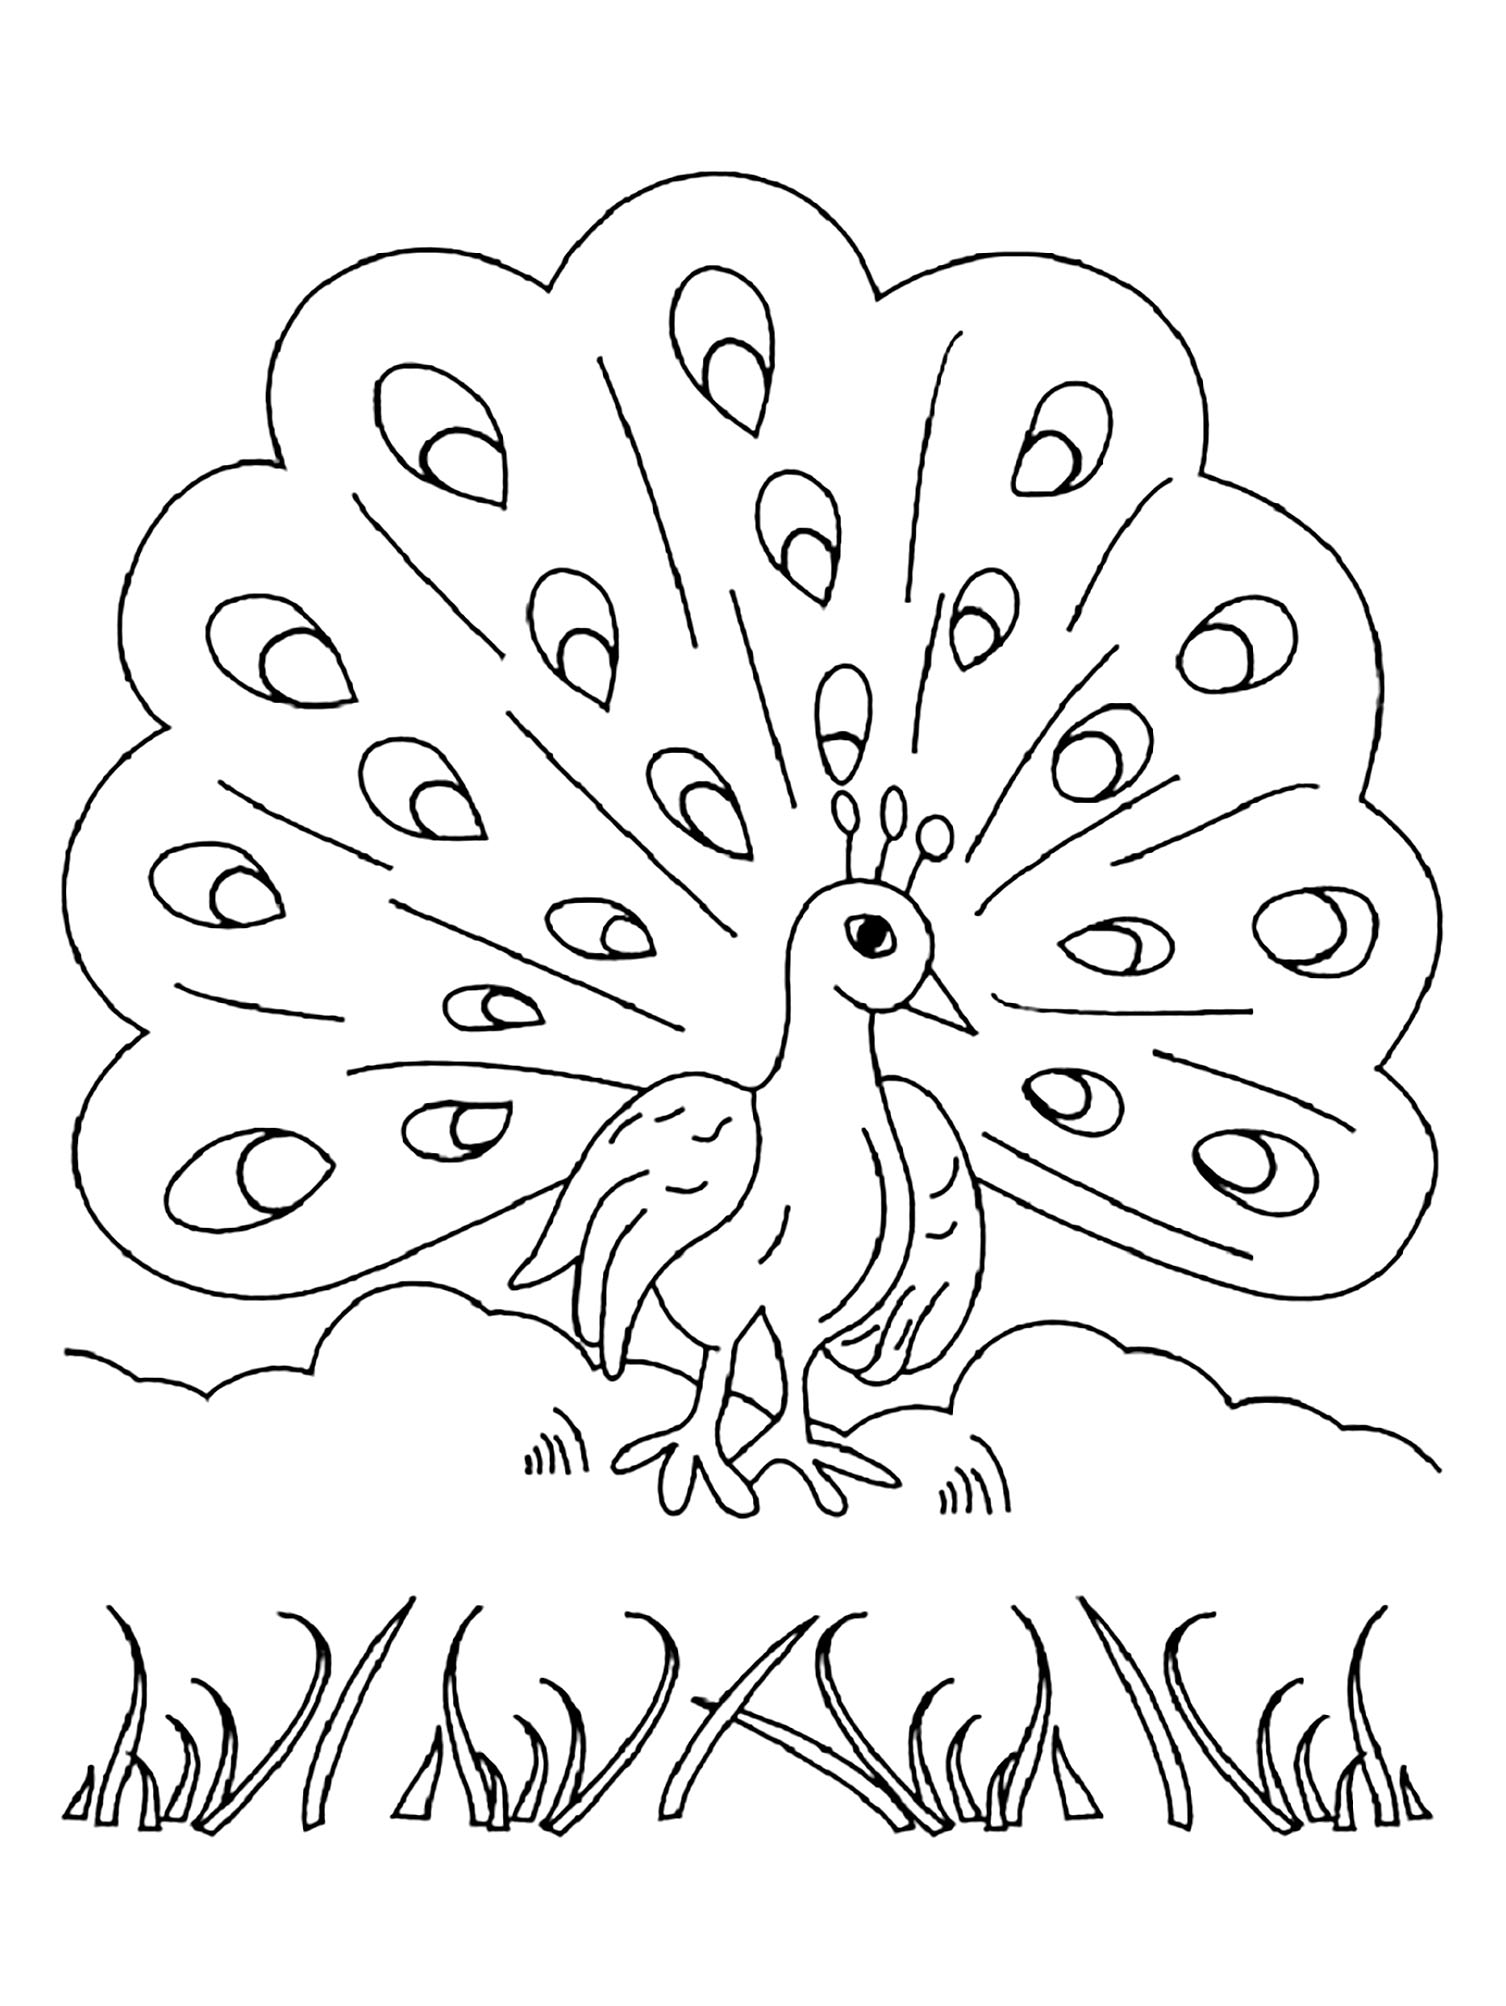 picture of peacock to color how to draw a peacock by dawn peacock coloring pages peacock picture color to of